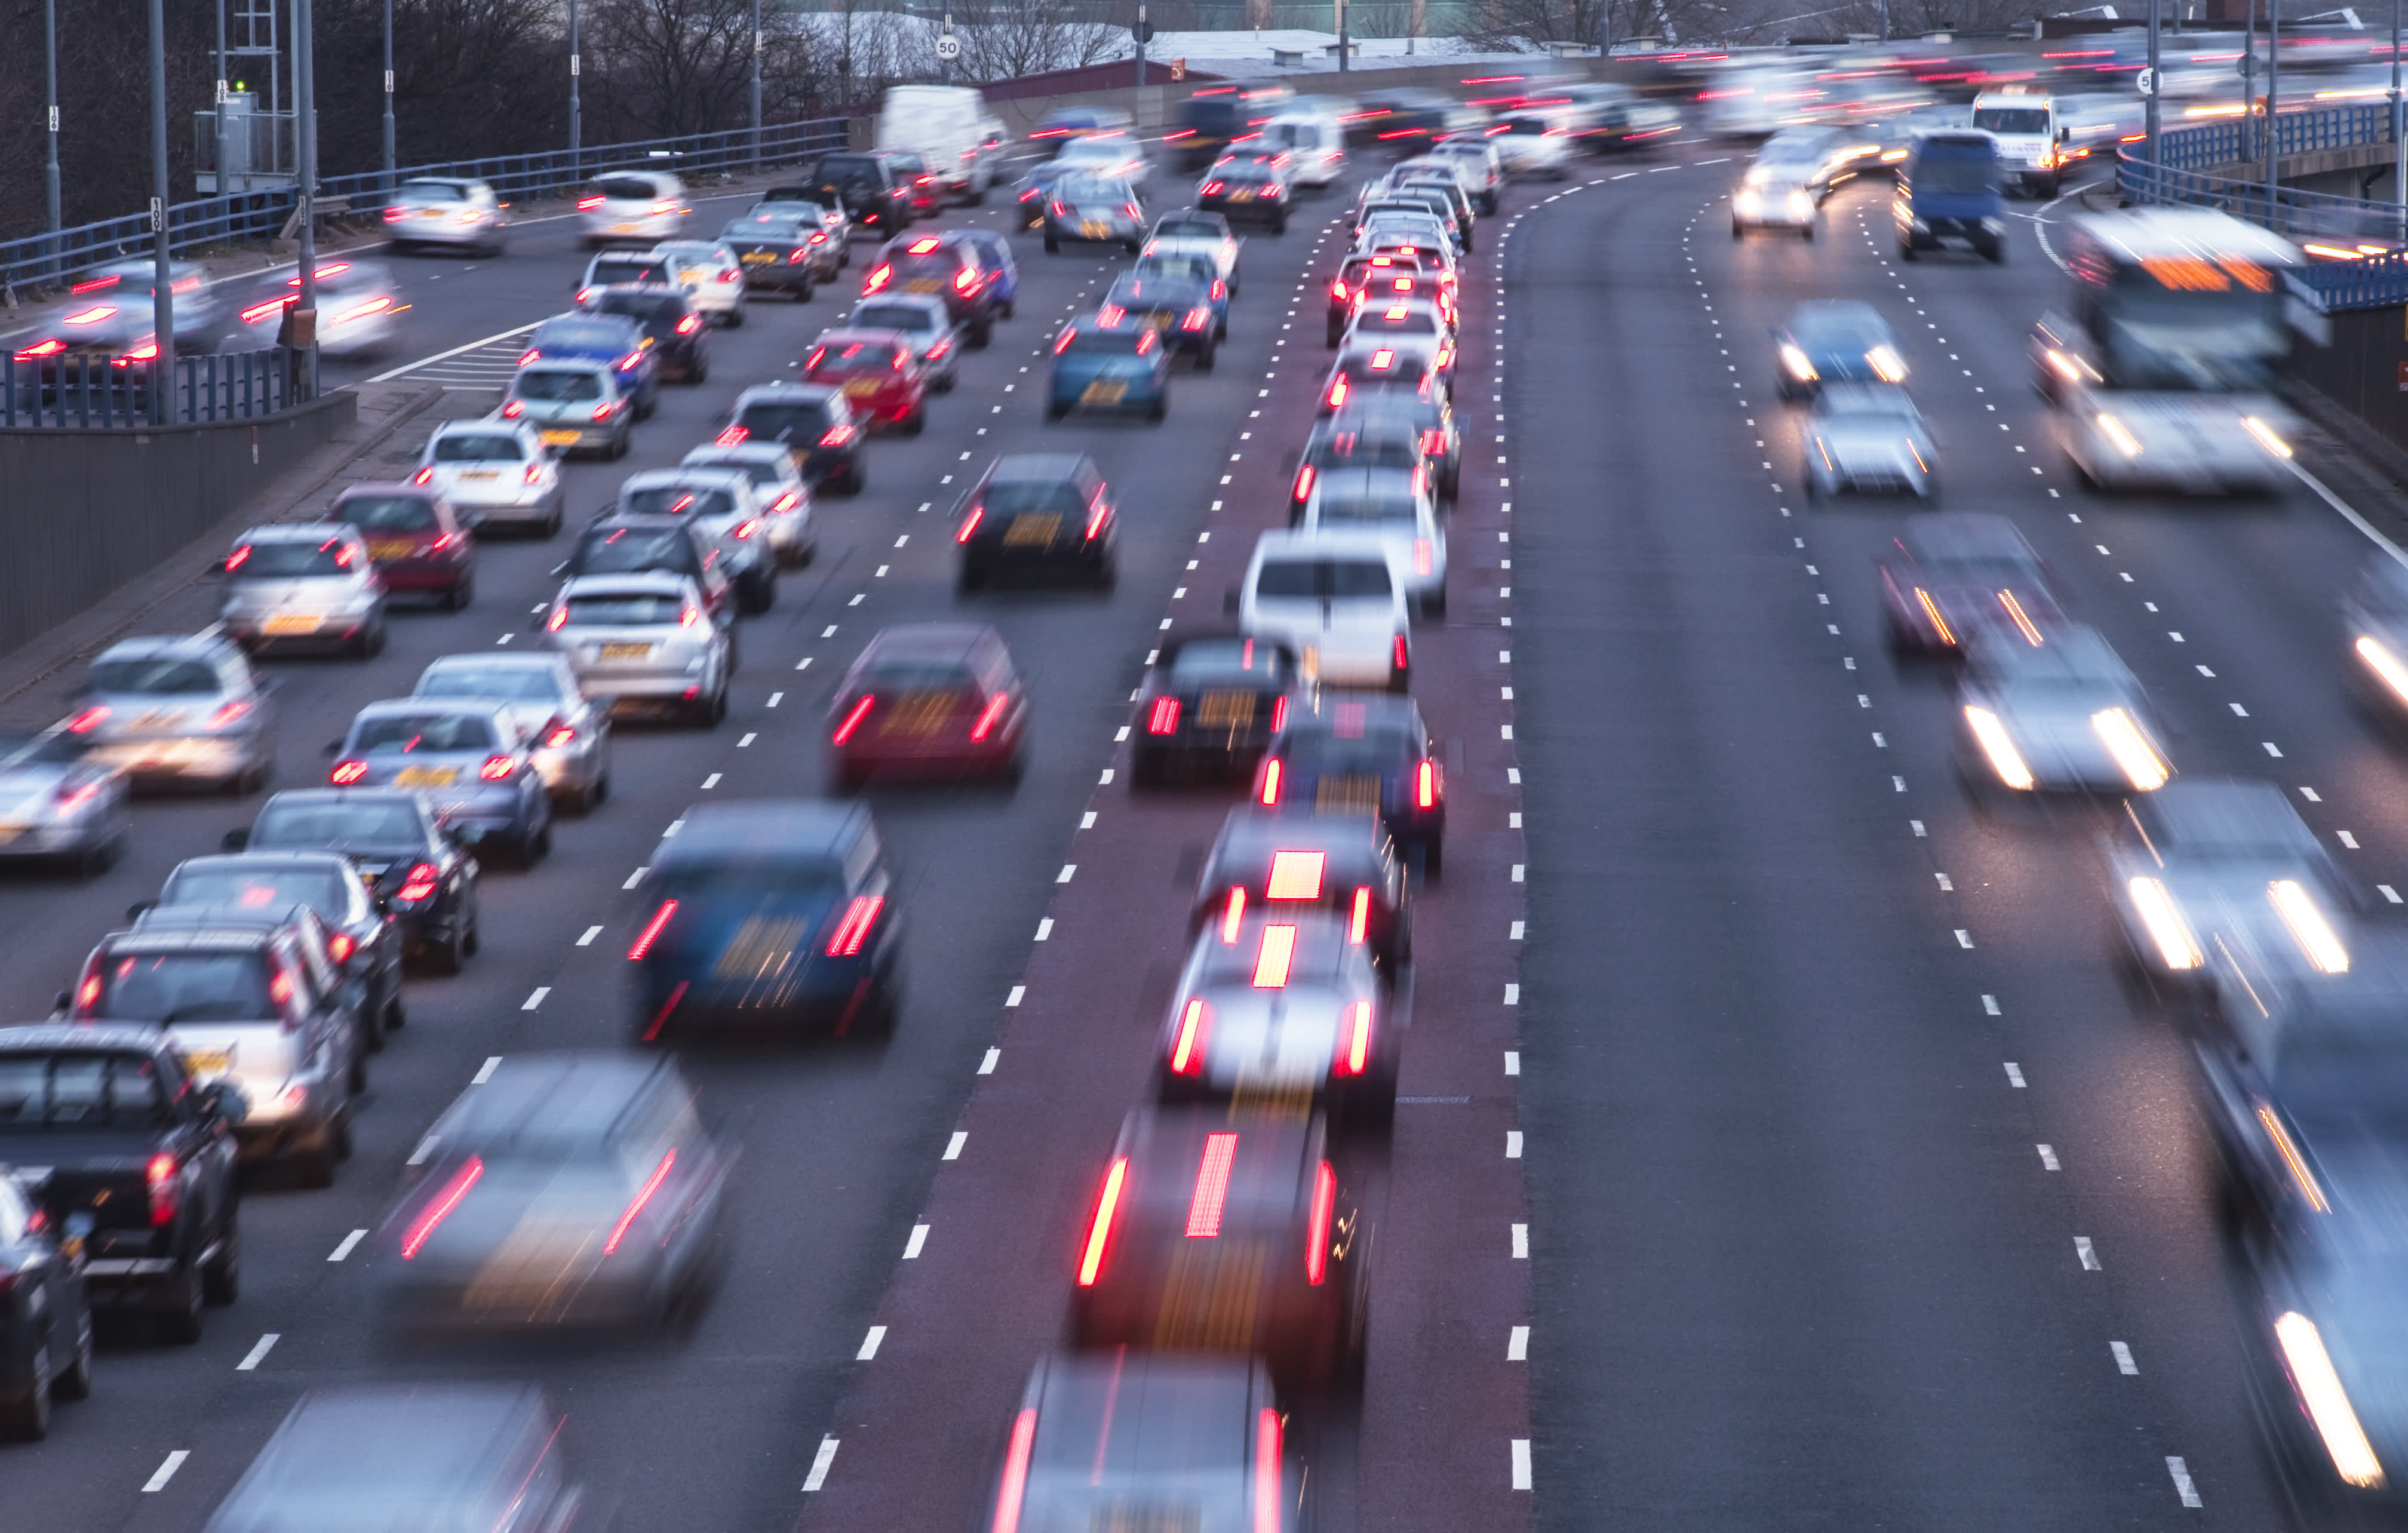 British government takes a first step toward allowing 'self-driving' cars on public roads